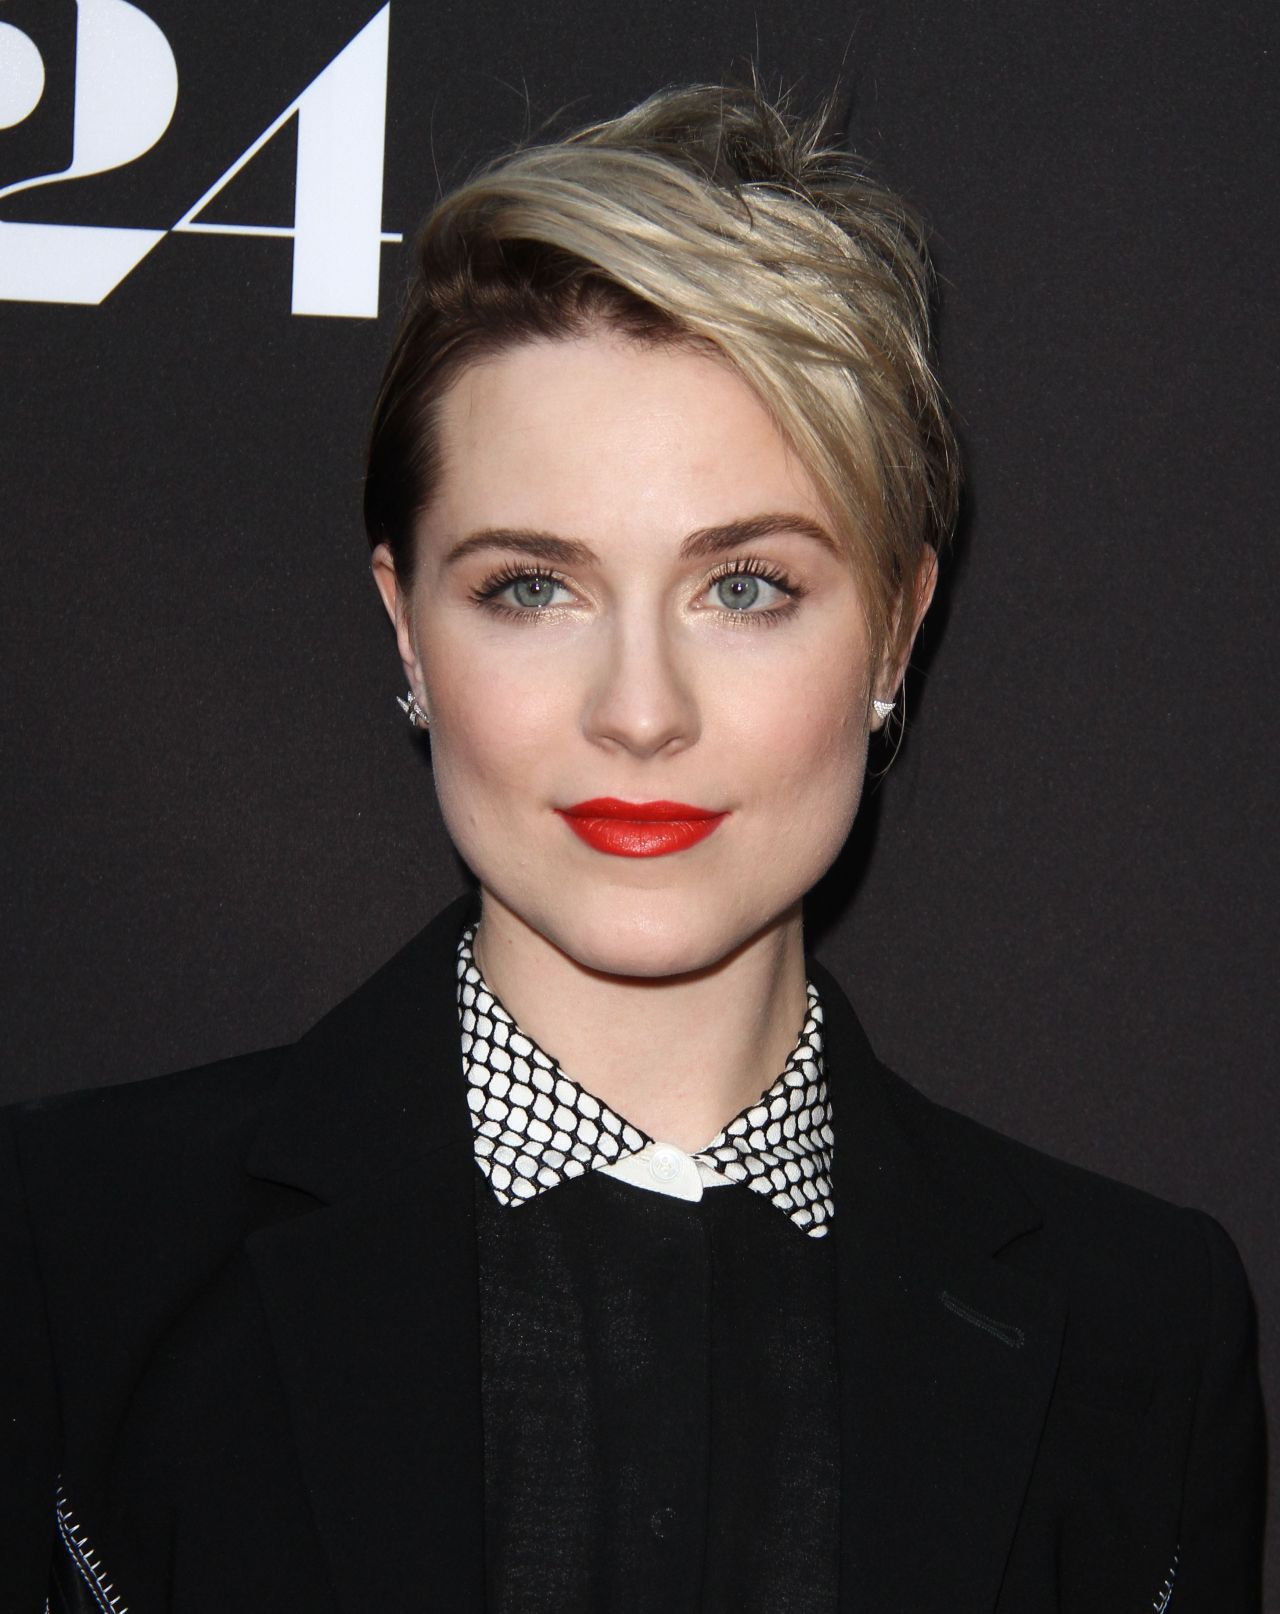 Evan Rachel Wood - A24's 'Into The Forest' Premiere at ArcLight ... Evan Rachel Wood